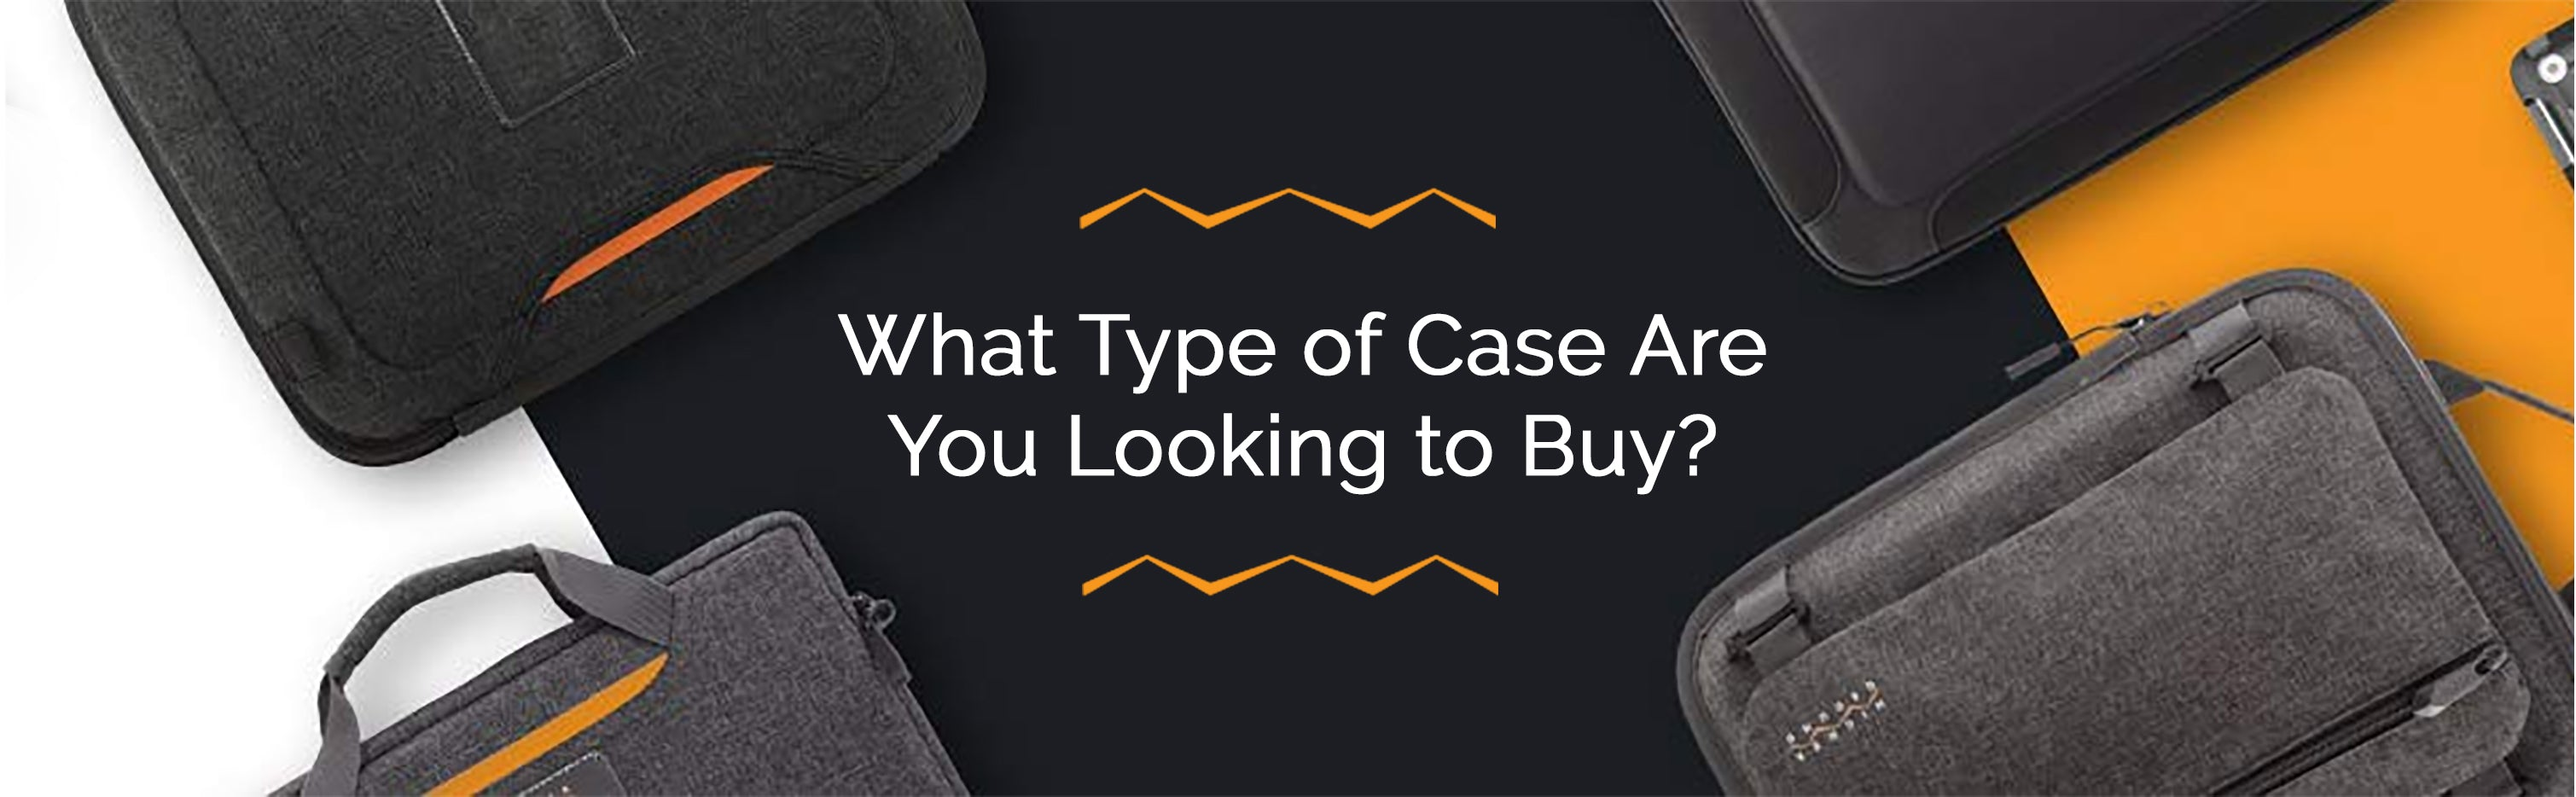 What Type of Case Are You Looking To Buy?